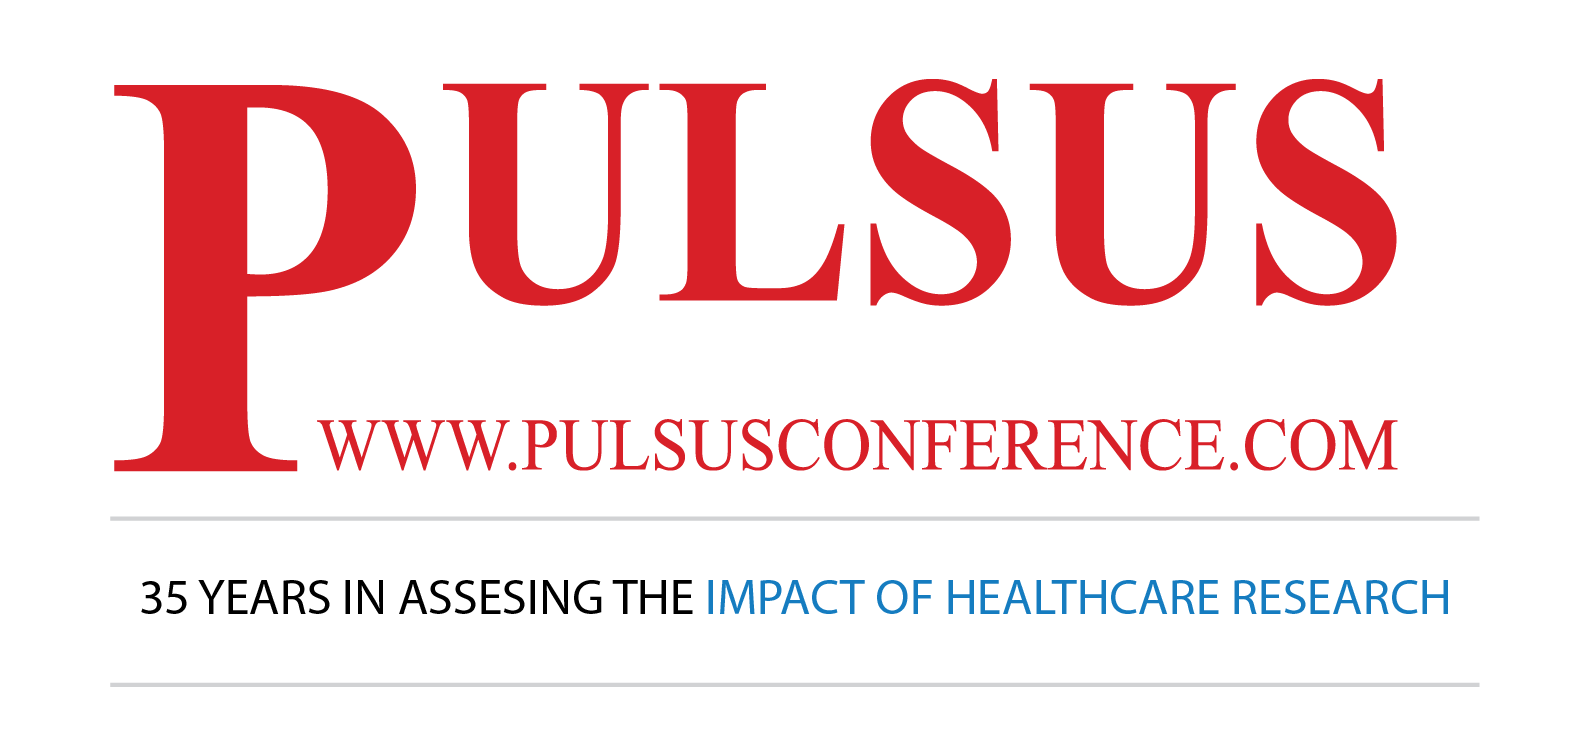 Pulsus Conference